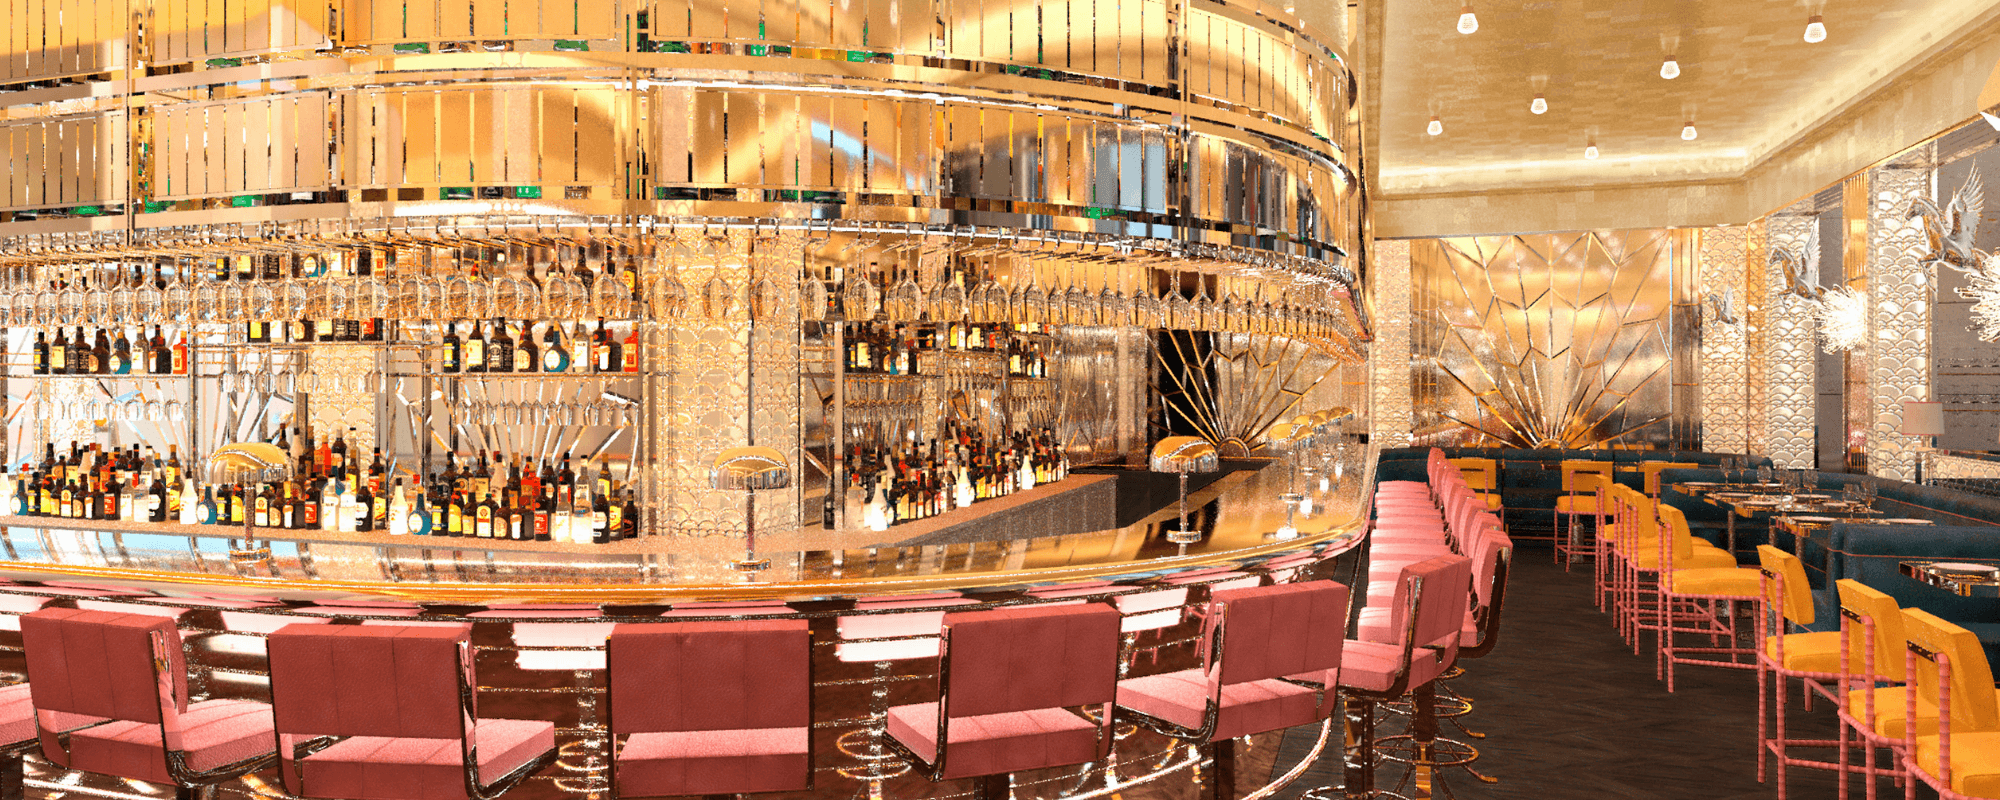 Restaurant and Bar in Selfridges, Brasserie of Light, Oxford Street